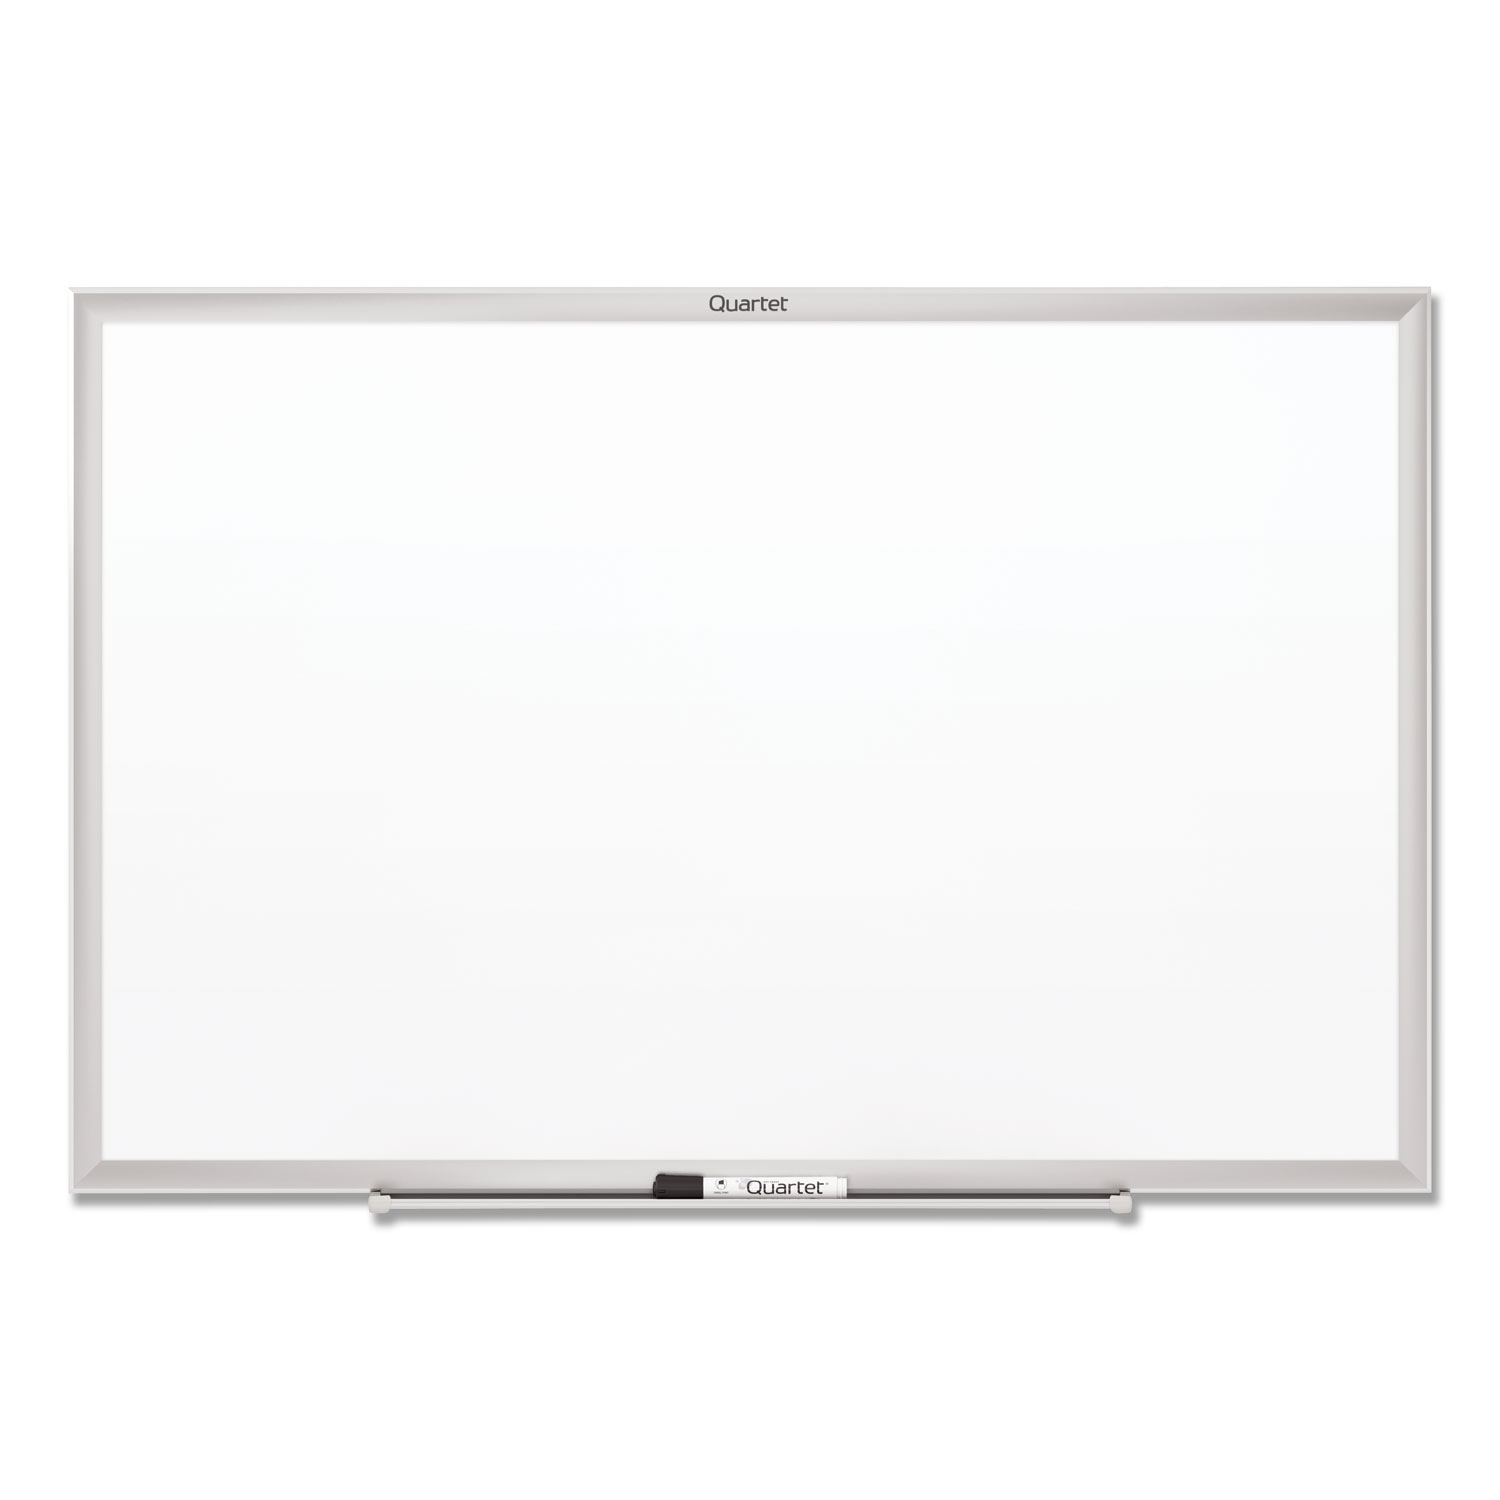 Picture of Classic Series Total Erase Dry Erase Board, 96 x 48, Silver Aluminum Frame